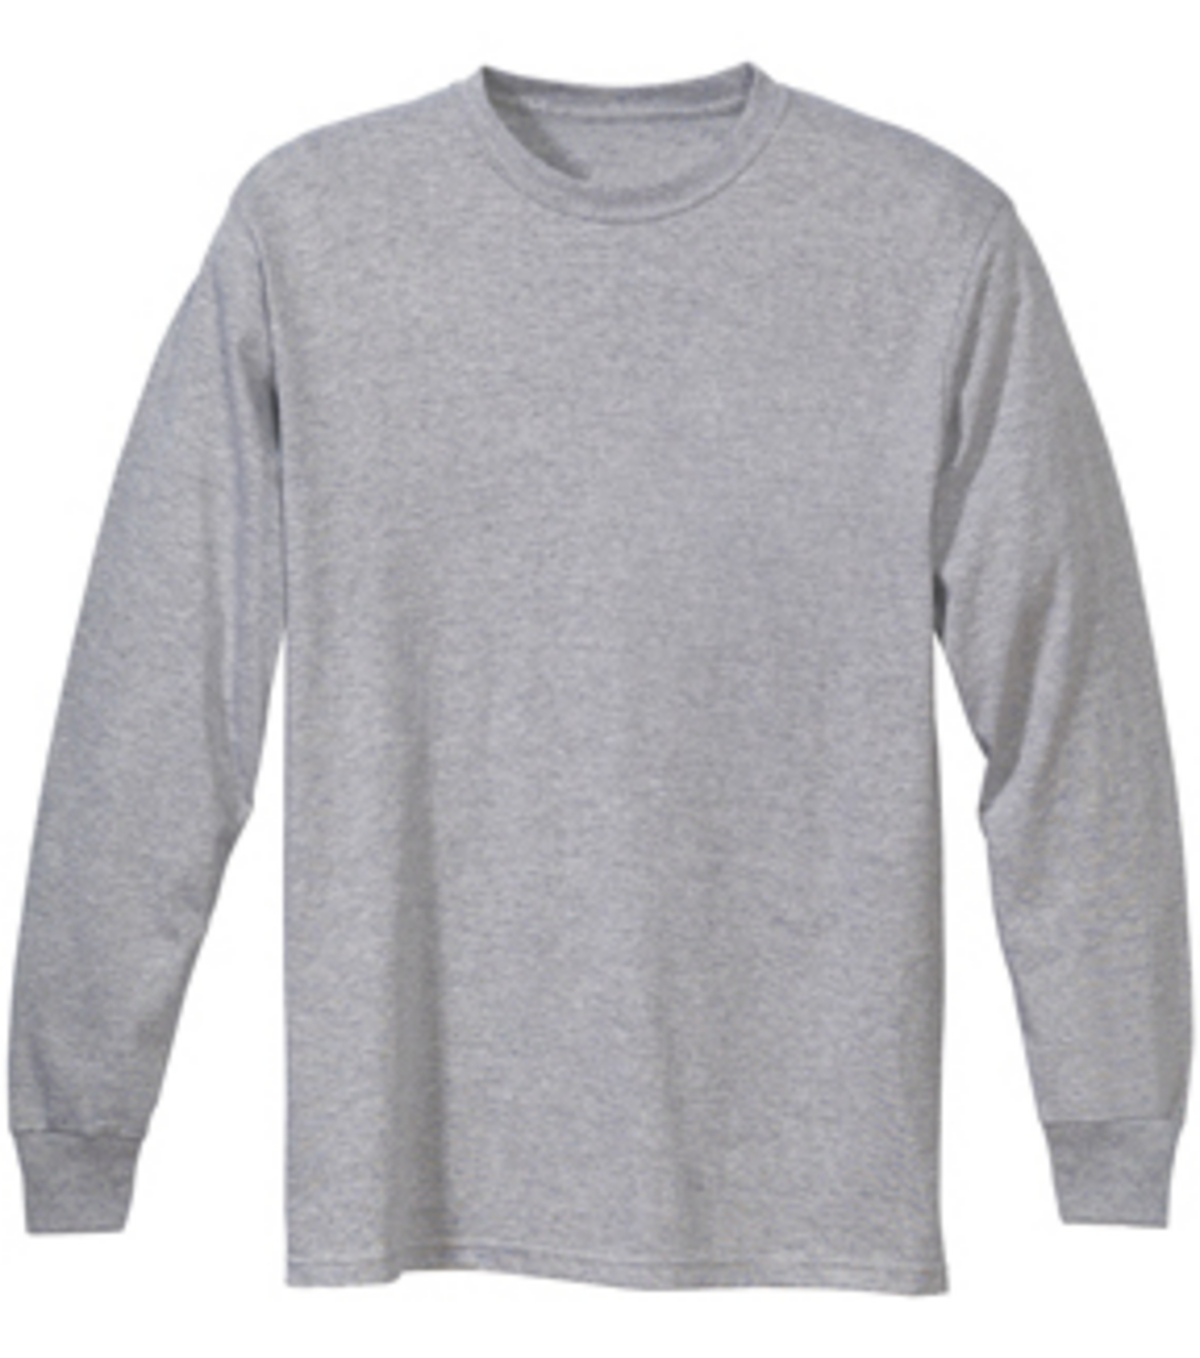 Adult Long Sleeve T-Shirt X-Large